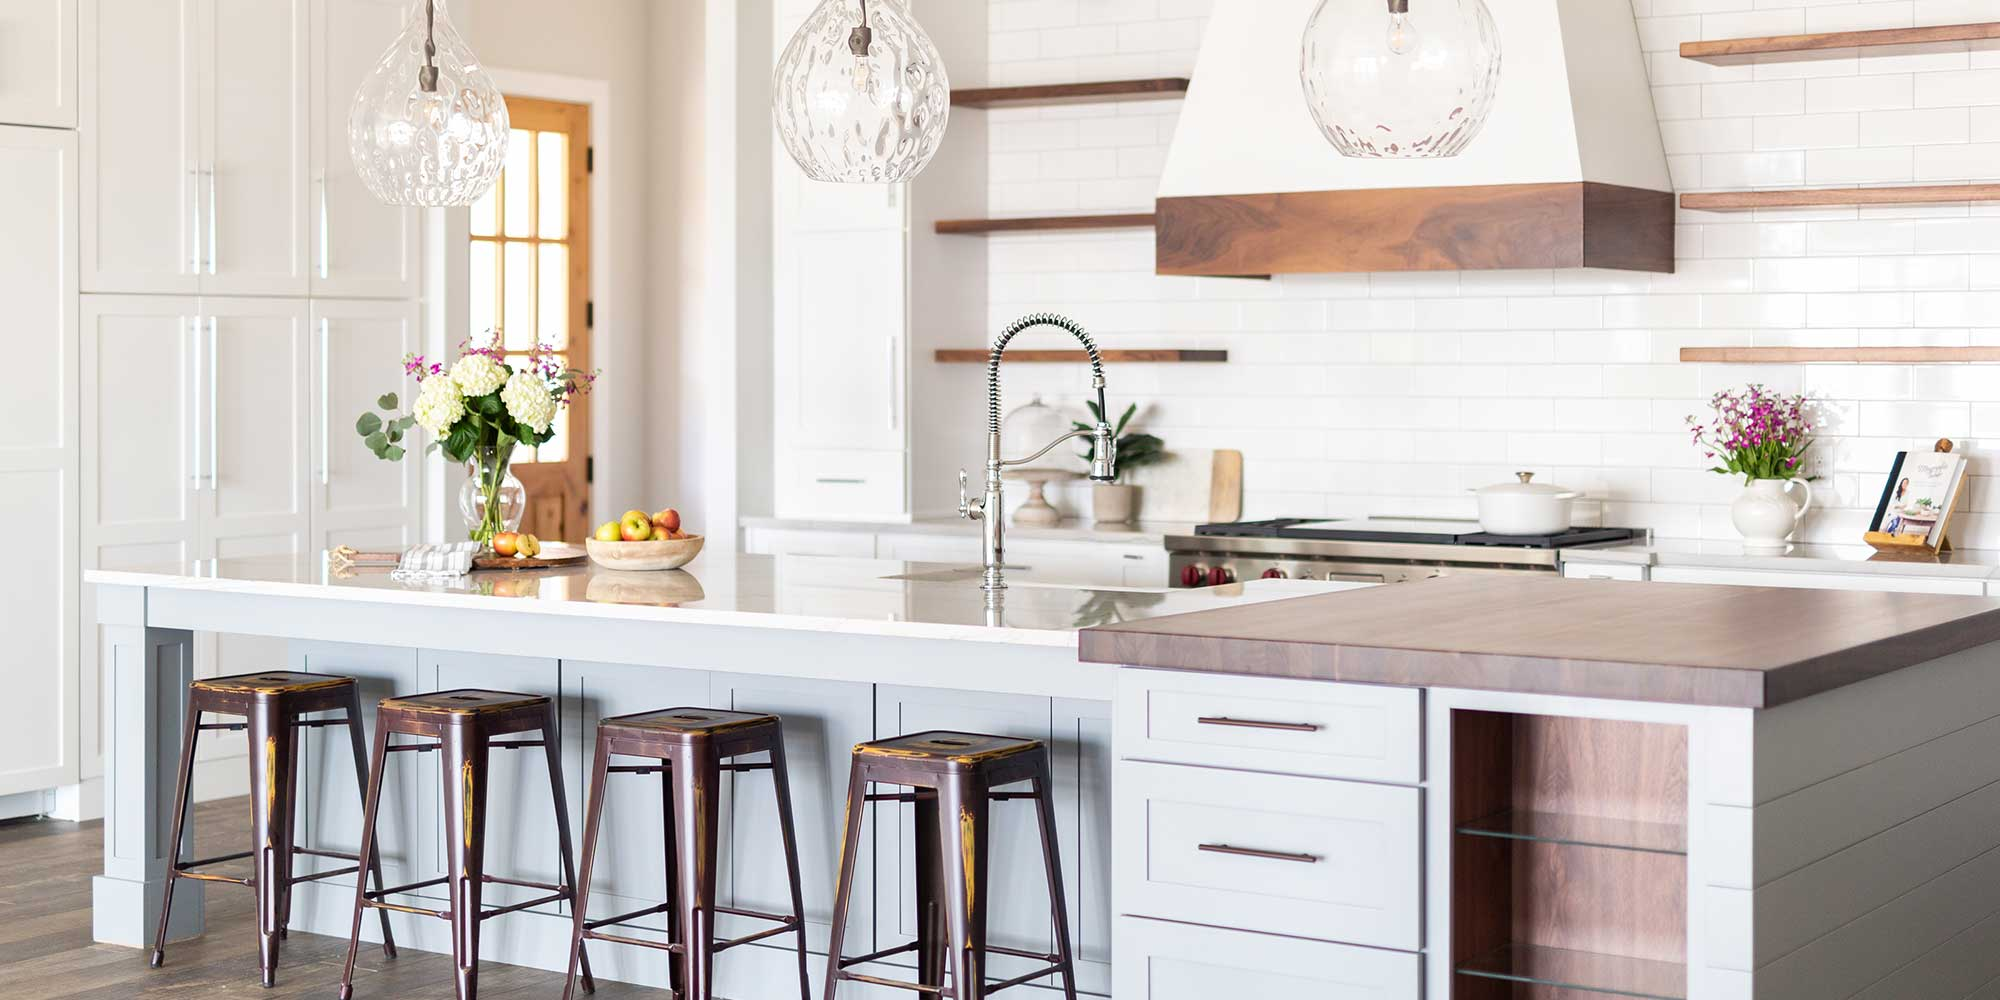 Kitchen seating with butcher block countertop